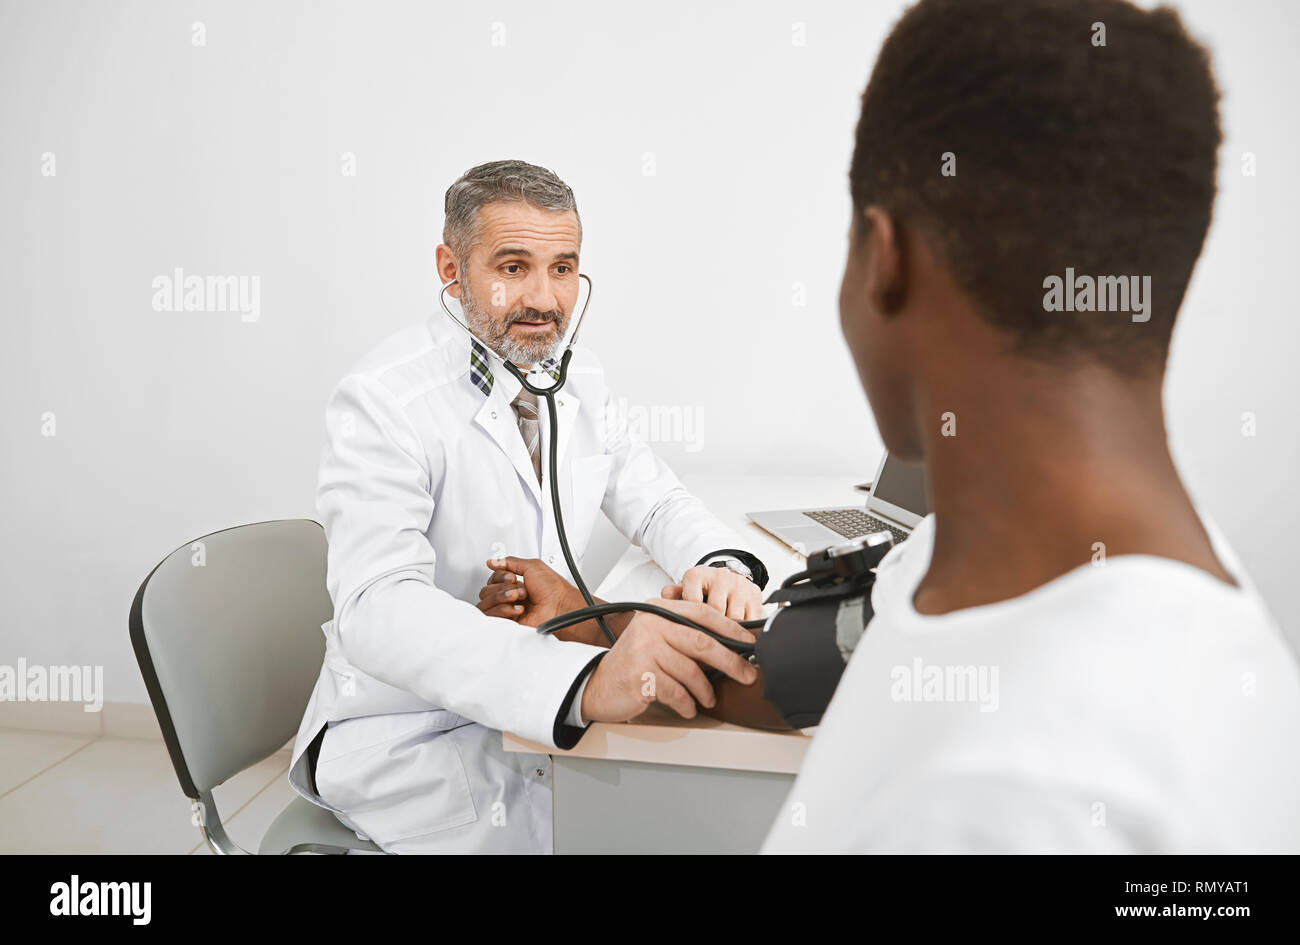 Doctor using sphygmomanometer for measuring blood pressure of patient. African man sitting on consultation, holding hand on table. Doctor wearing in medical white gown. - Stock Image